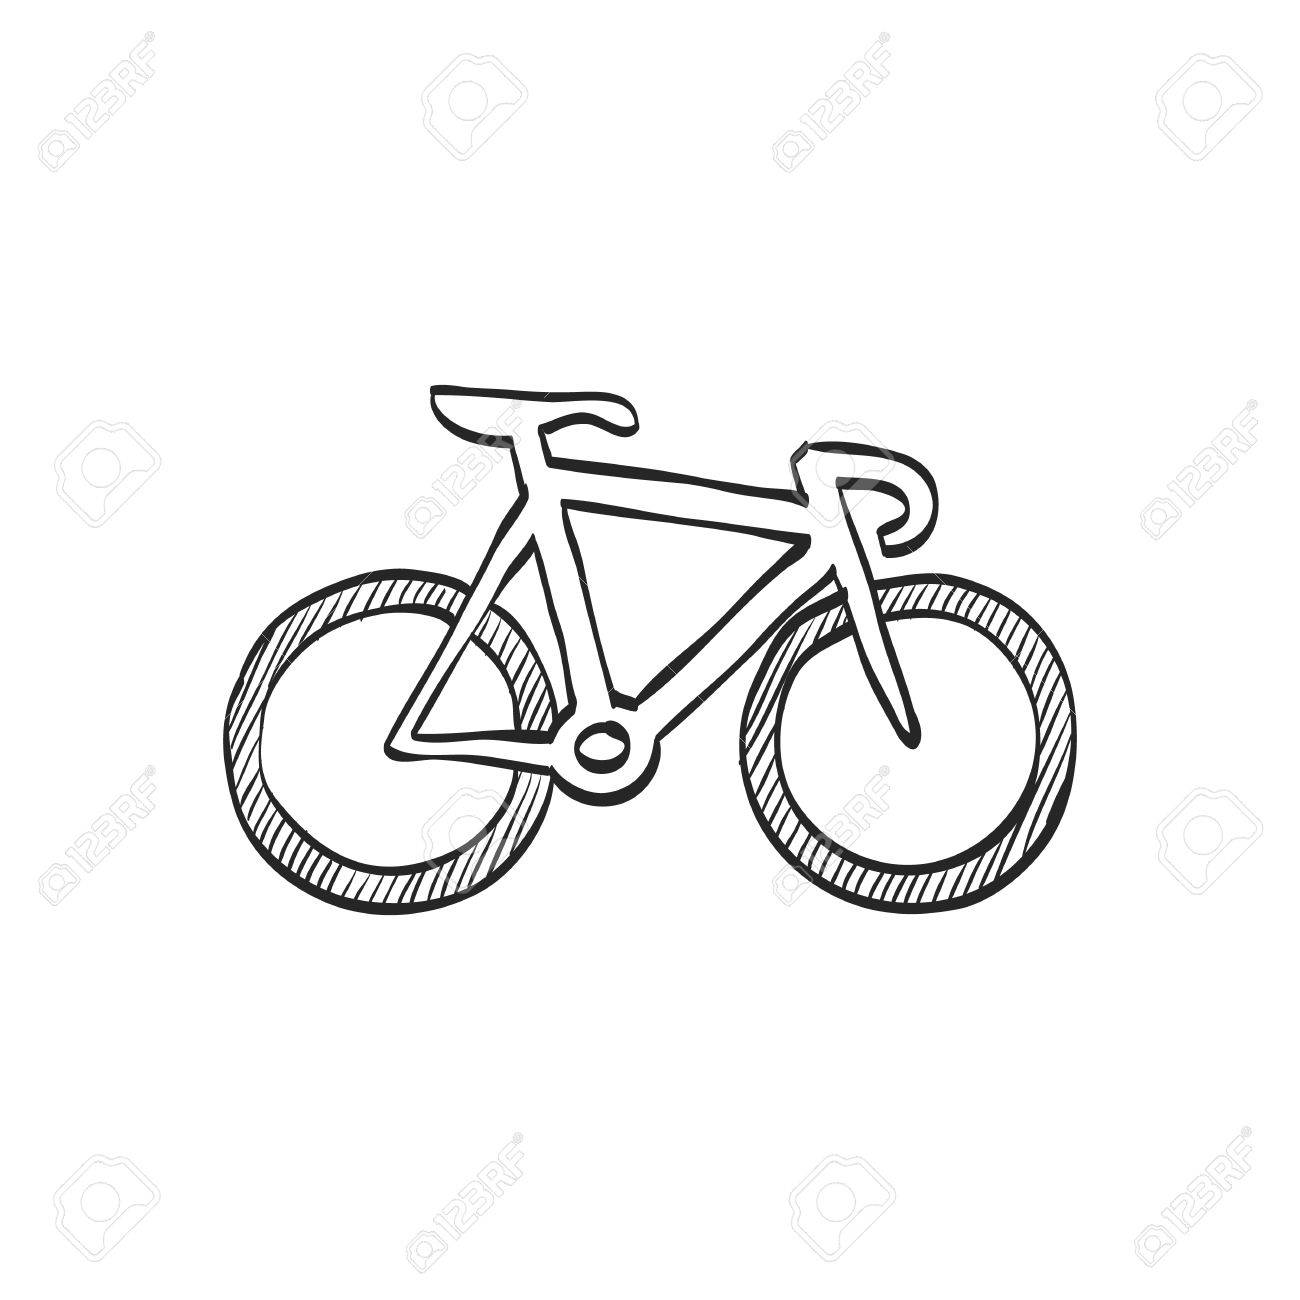 1300x1300 Track Bike Icon In Doodle Sketch Lines. Bicycle Racing Road